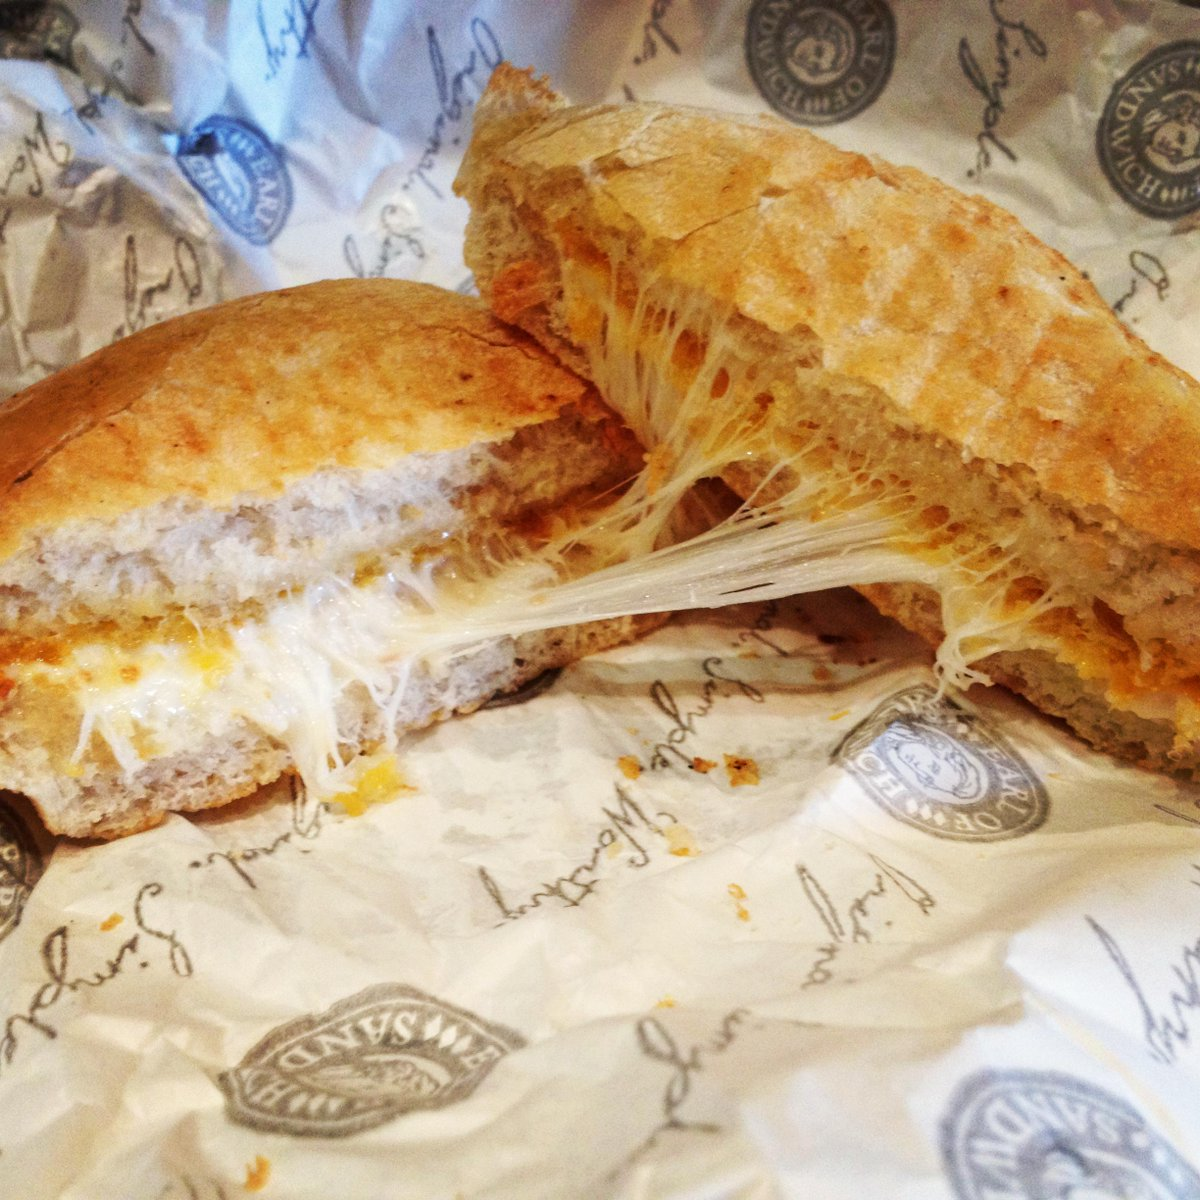 Happy National Grilled Cheese Day! #getcheesy http://t.co/kKH6h9ZfzF